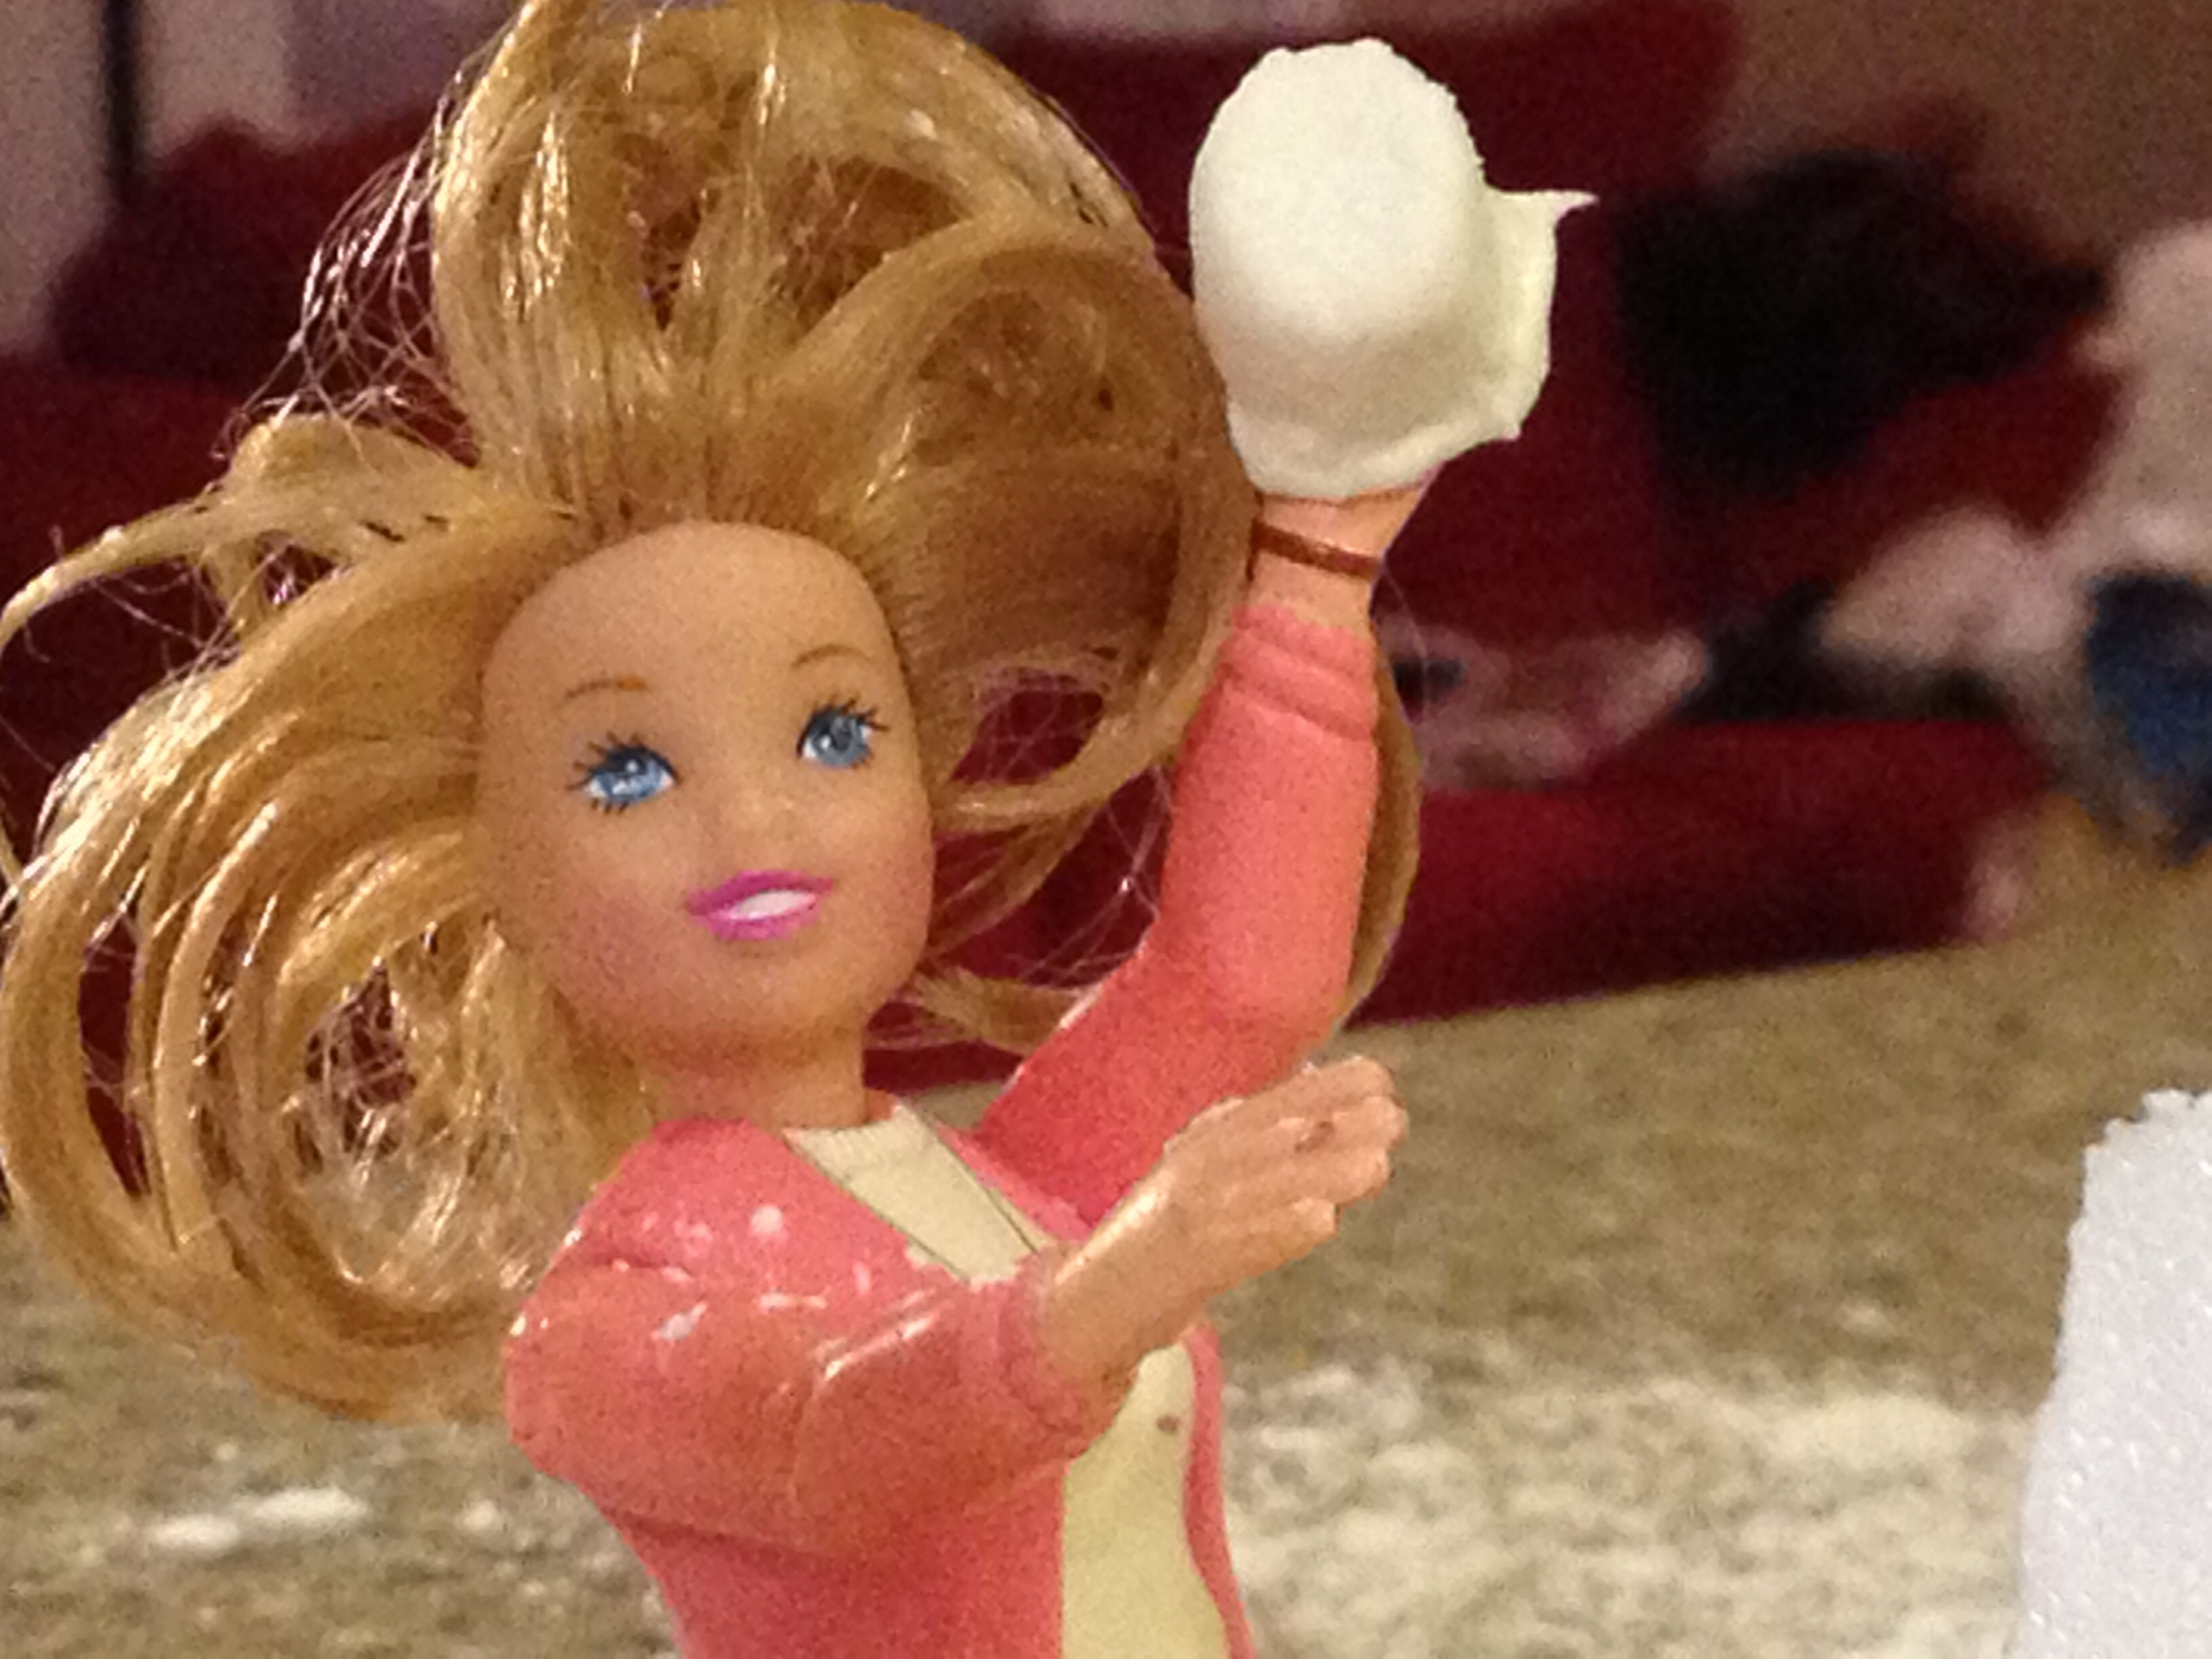 Barbie getting ready to hit Glitter with her snowball.